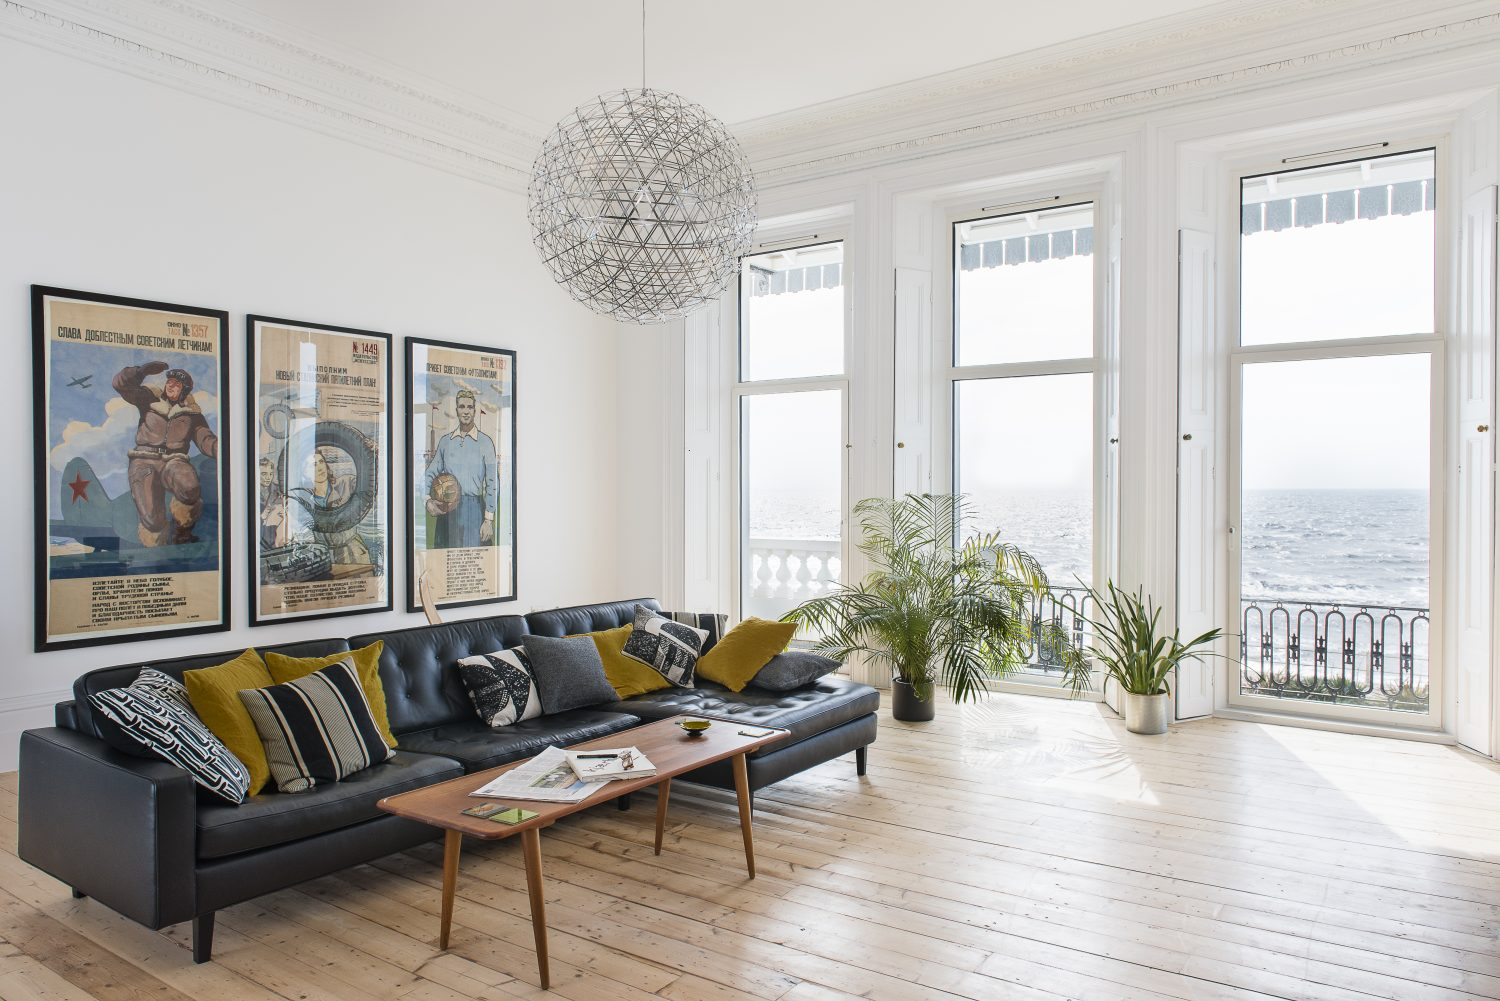 The main living space is in what was originally the ballroom of the house. The paintings are by house owner Ed Williams, inspired by the Soviet-era artworks in the nearby Baker Mamonova Gallery